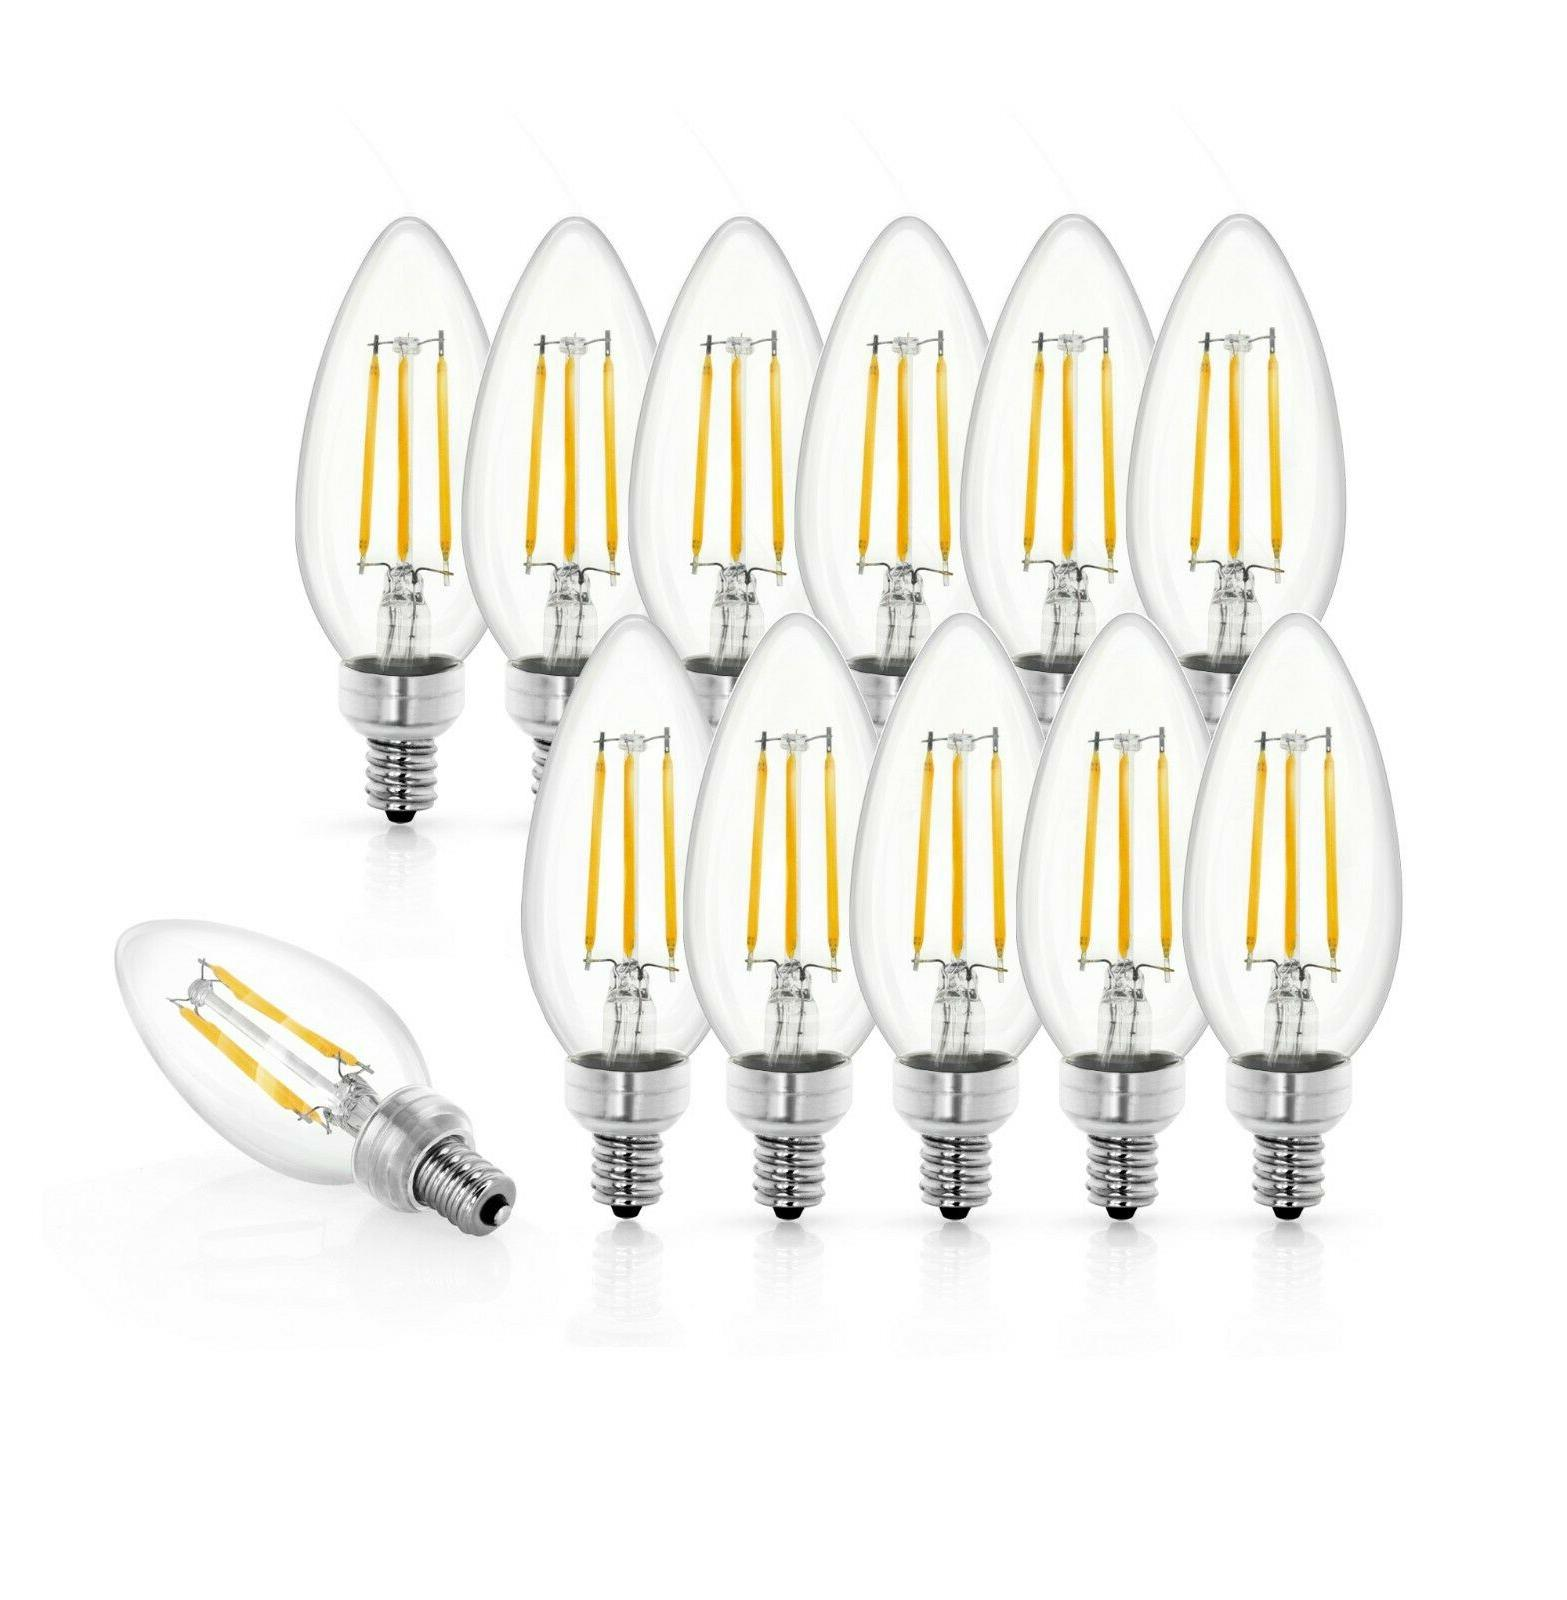 Tenergy LED Dimmable Candelabra